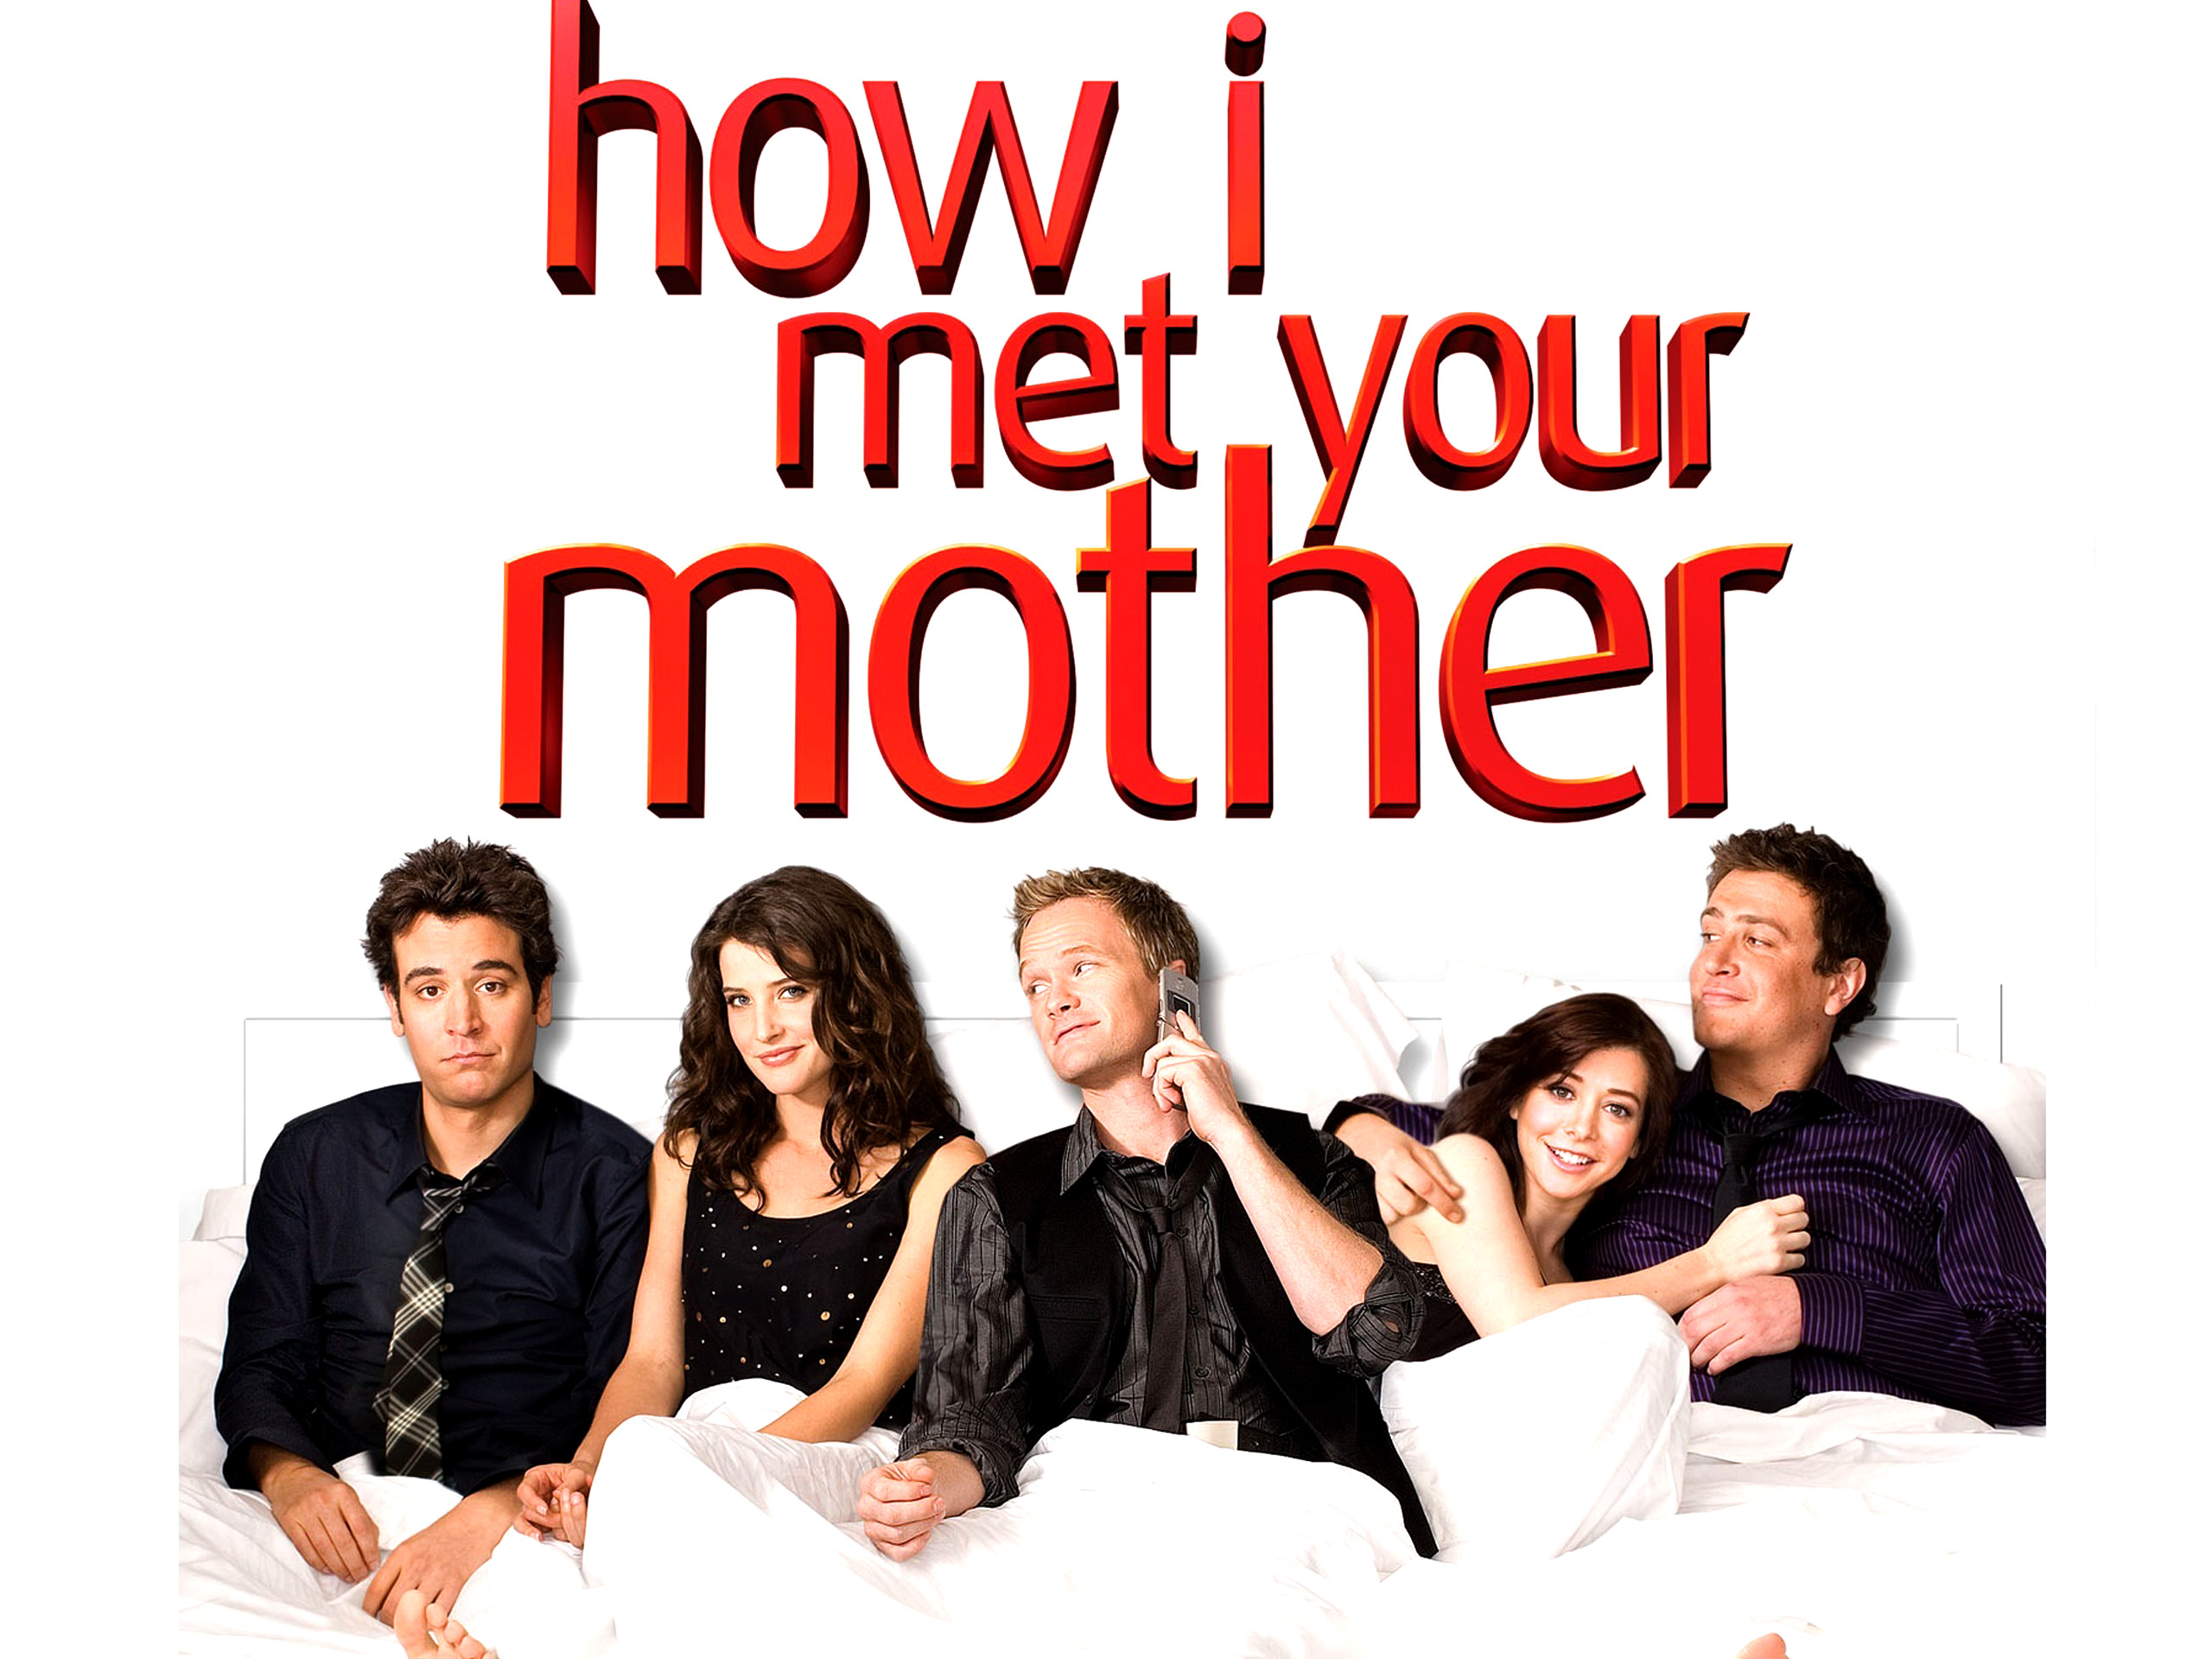 """How I Met Your Mother"" certainly loves to resort to jokes at the expense of trans people"